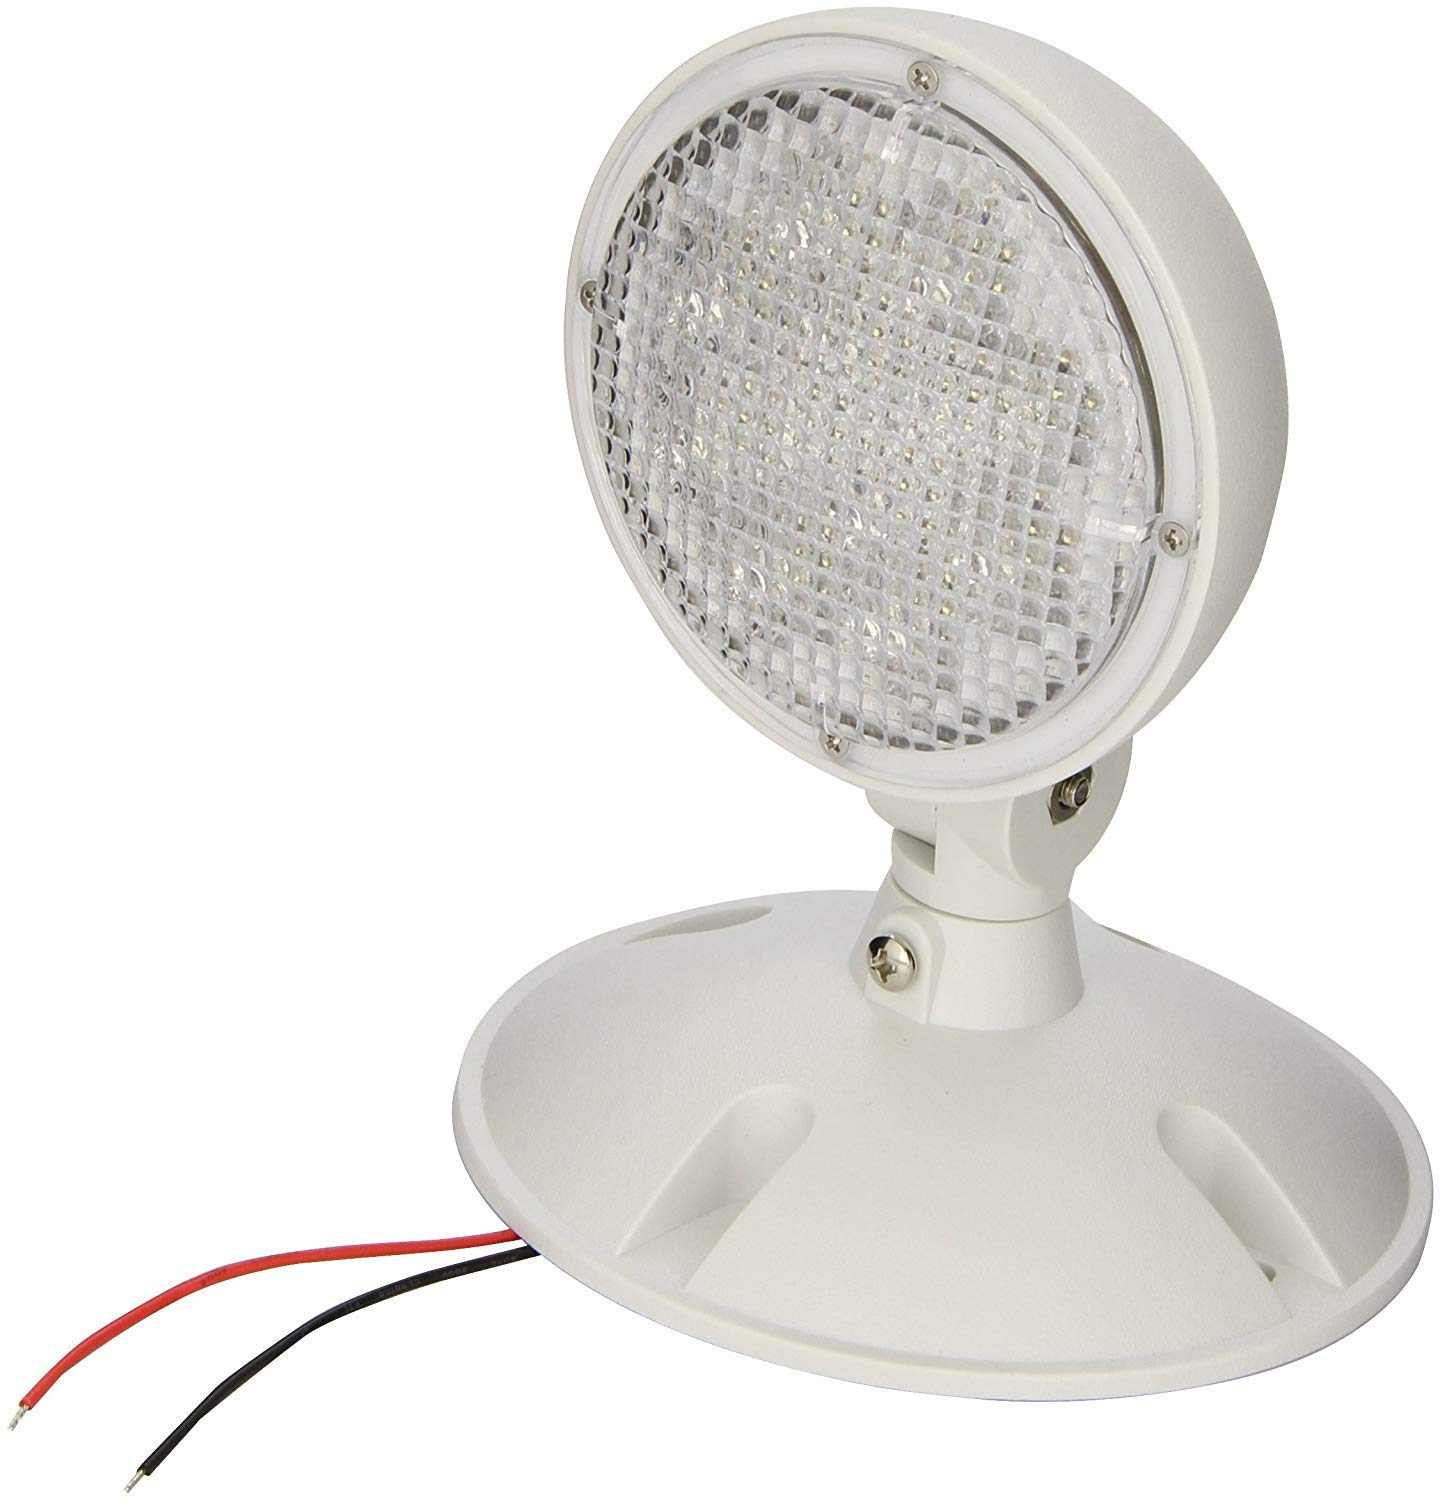 Morris Products 73126 Remote Emergency Light Head 1 3.6V 1.7W LED Lamp Weatherproof (2) by Morris Products